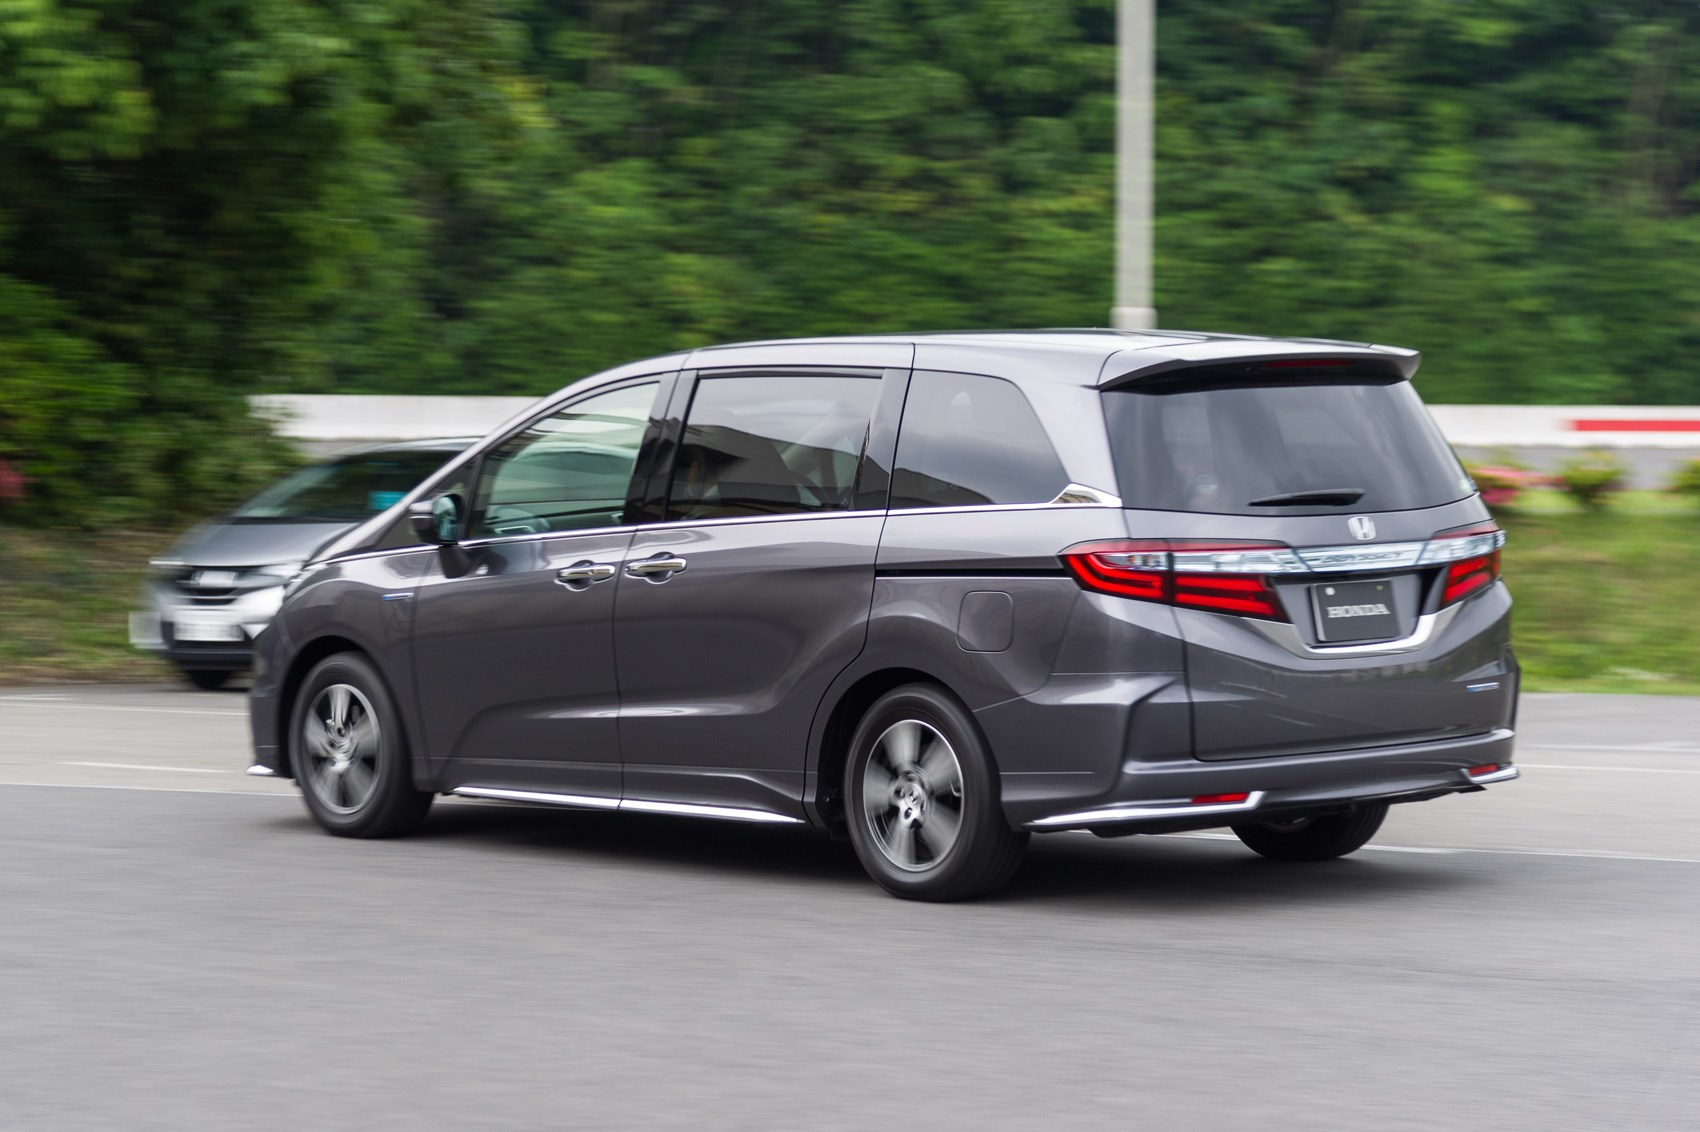 Testing Hondas Future Hybrid Drive We Try The New Two Motor System Honda Odyssey Suspension Diagram Tested In A Mpv Based Test Mule At Tochigi